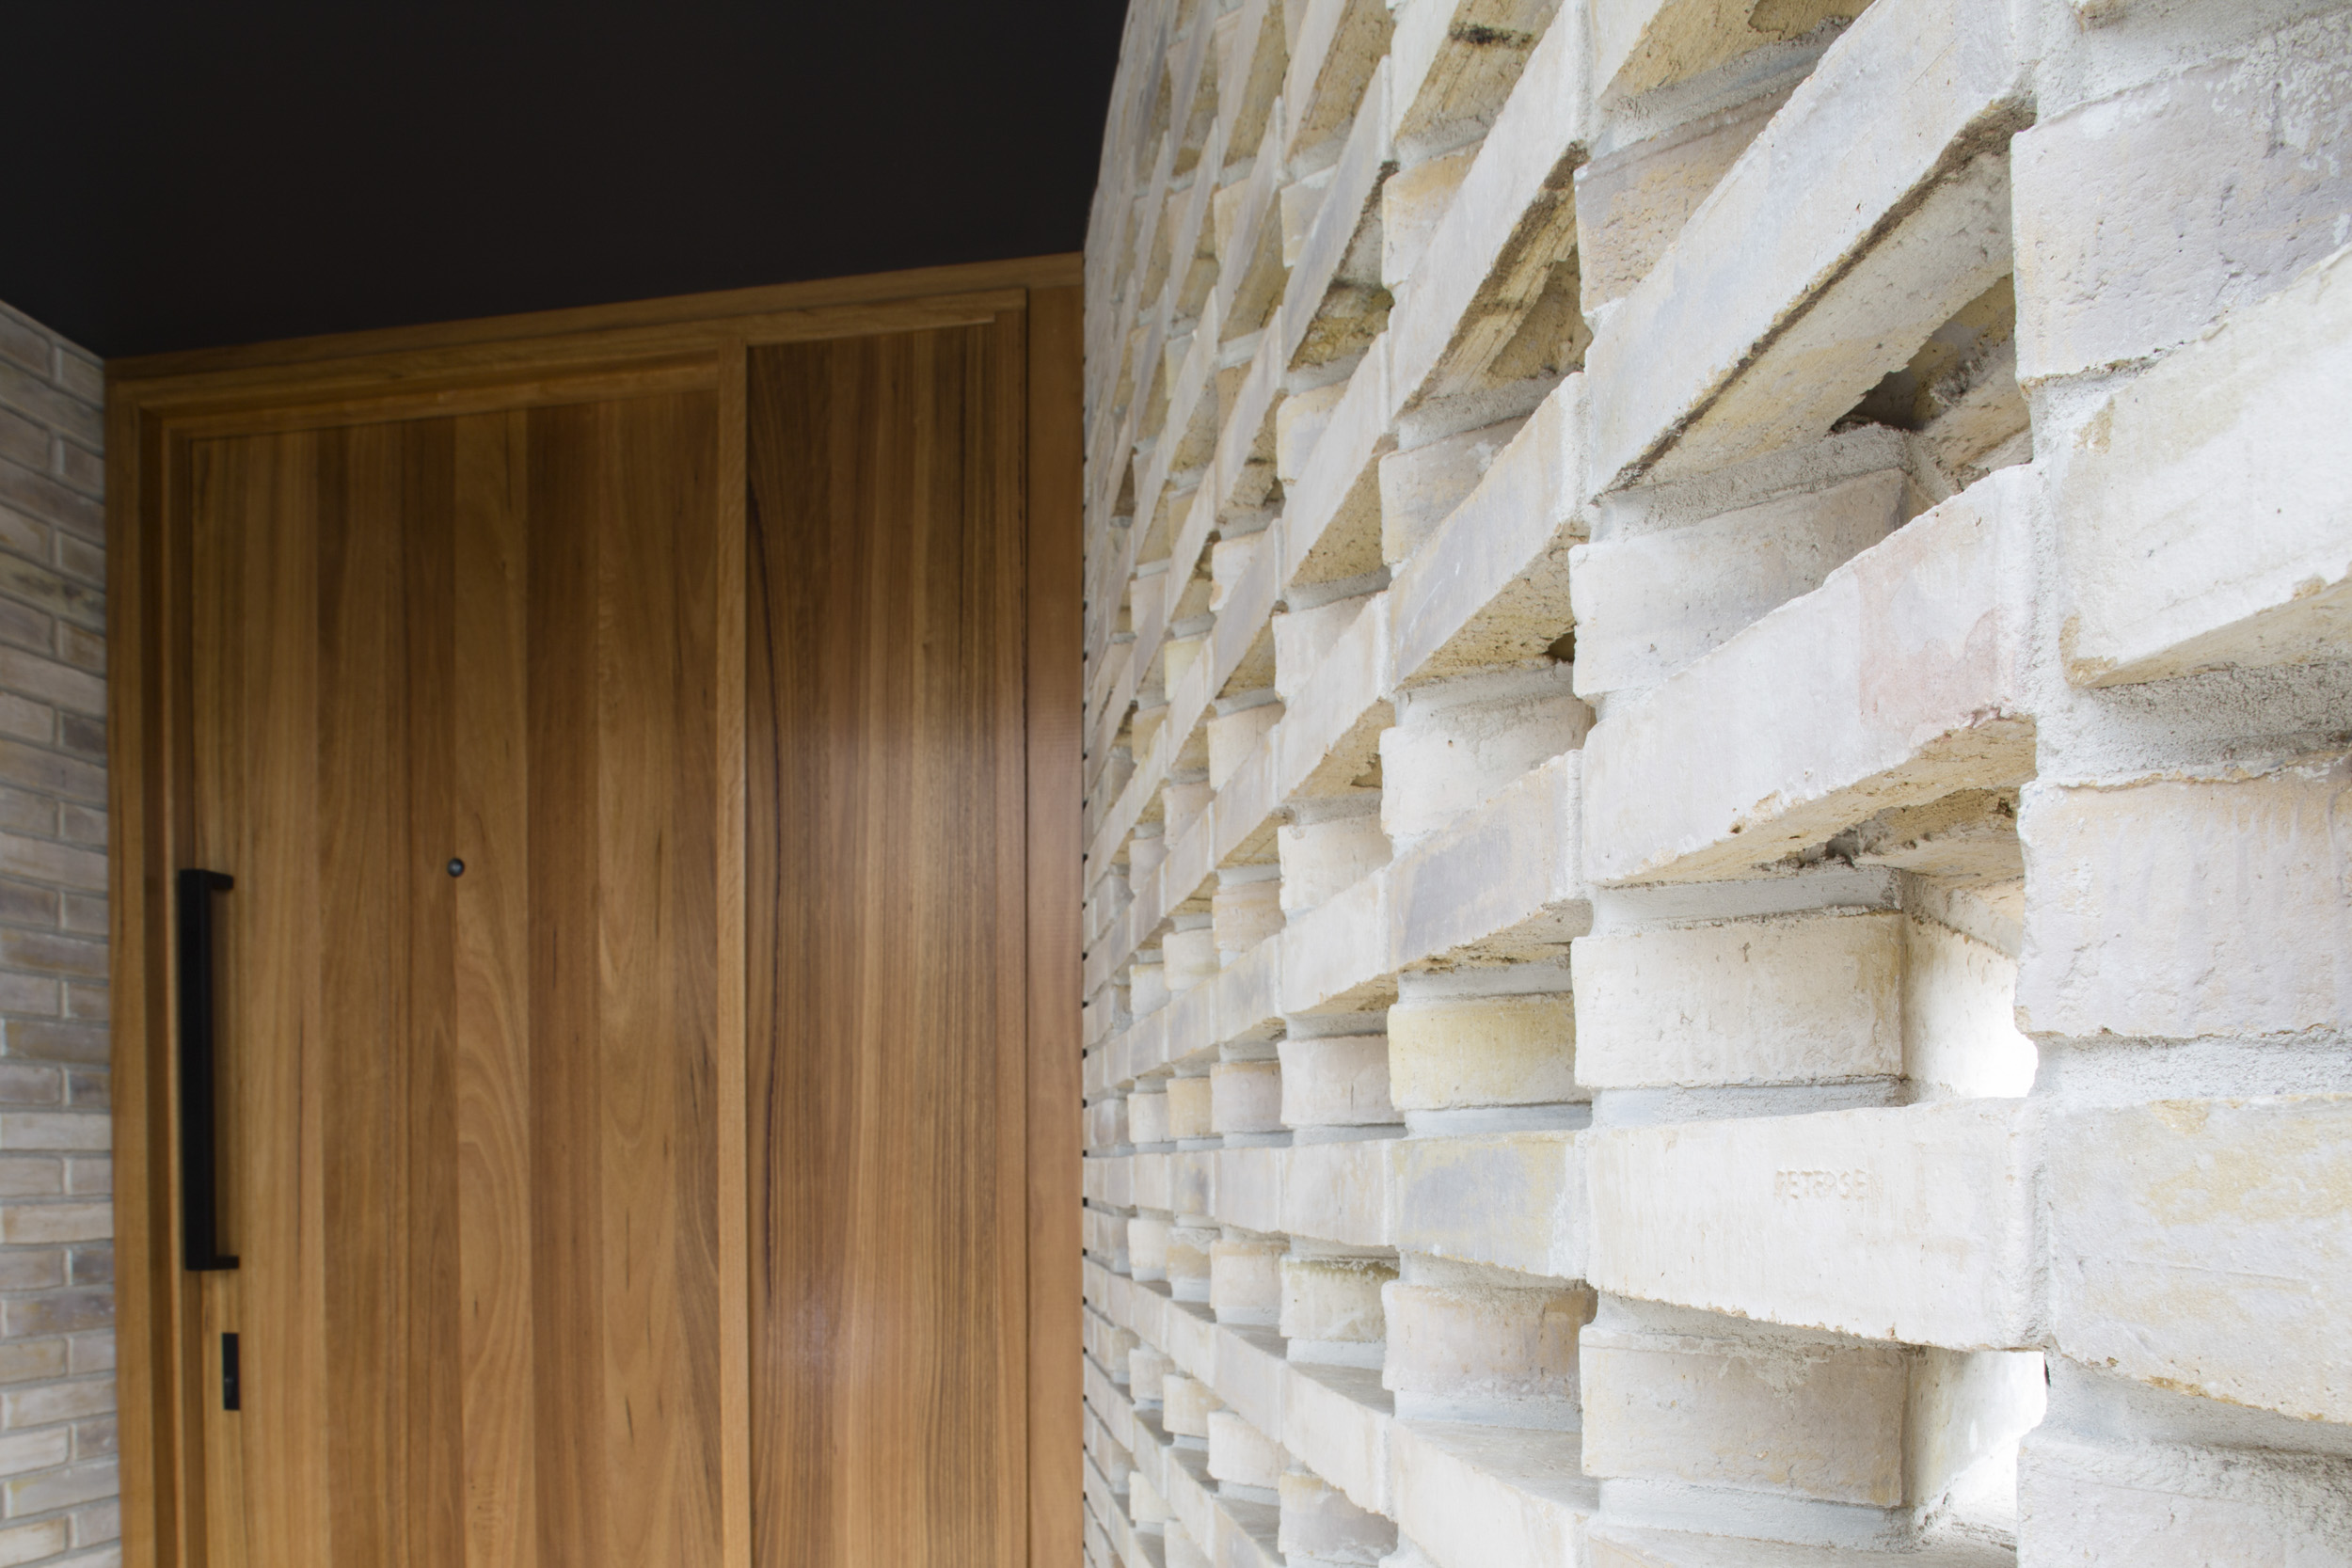 residential_architects_sq_projects_sydney_07.jpg